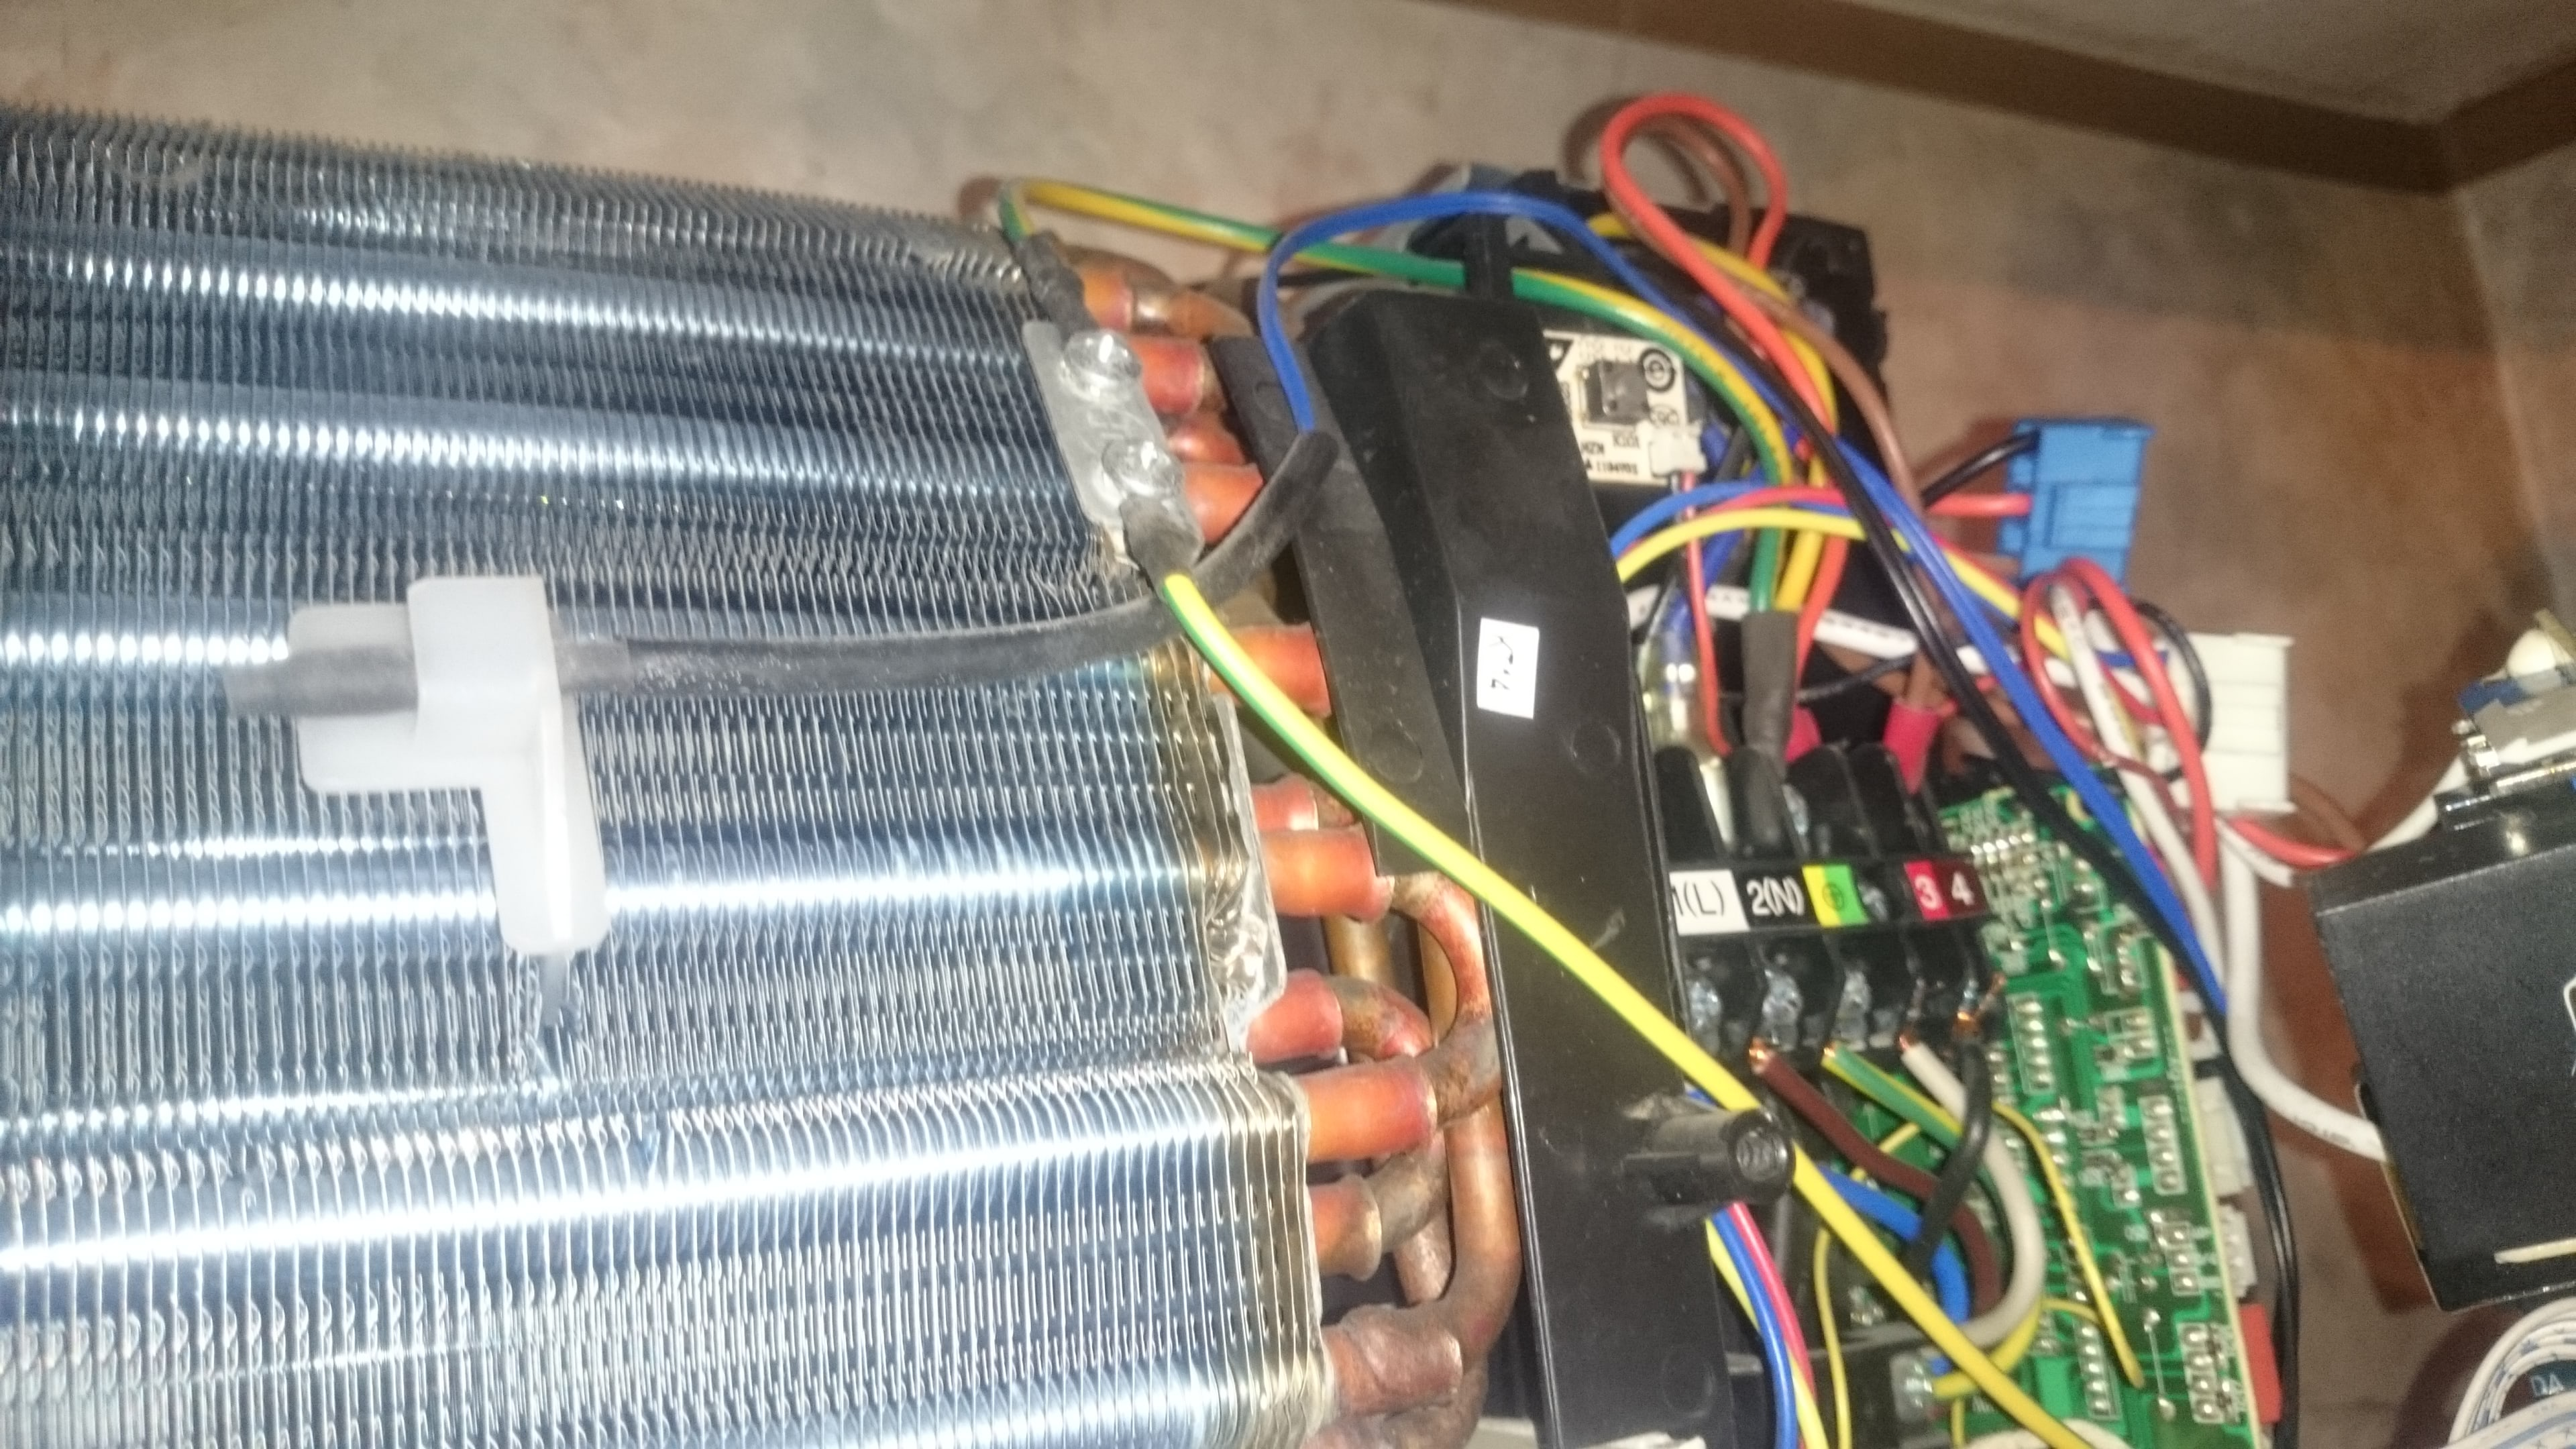 Reparatii placi electronice aparate aer conditionat daikin